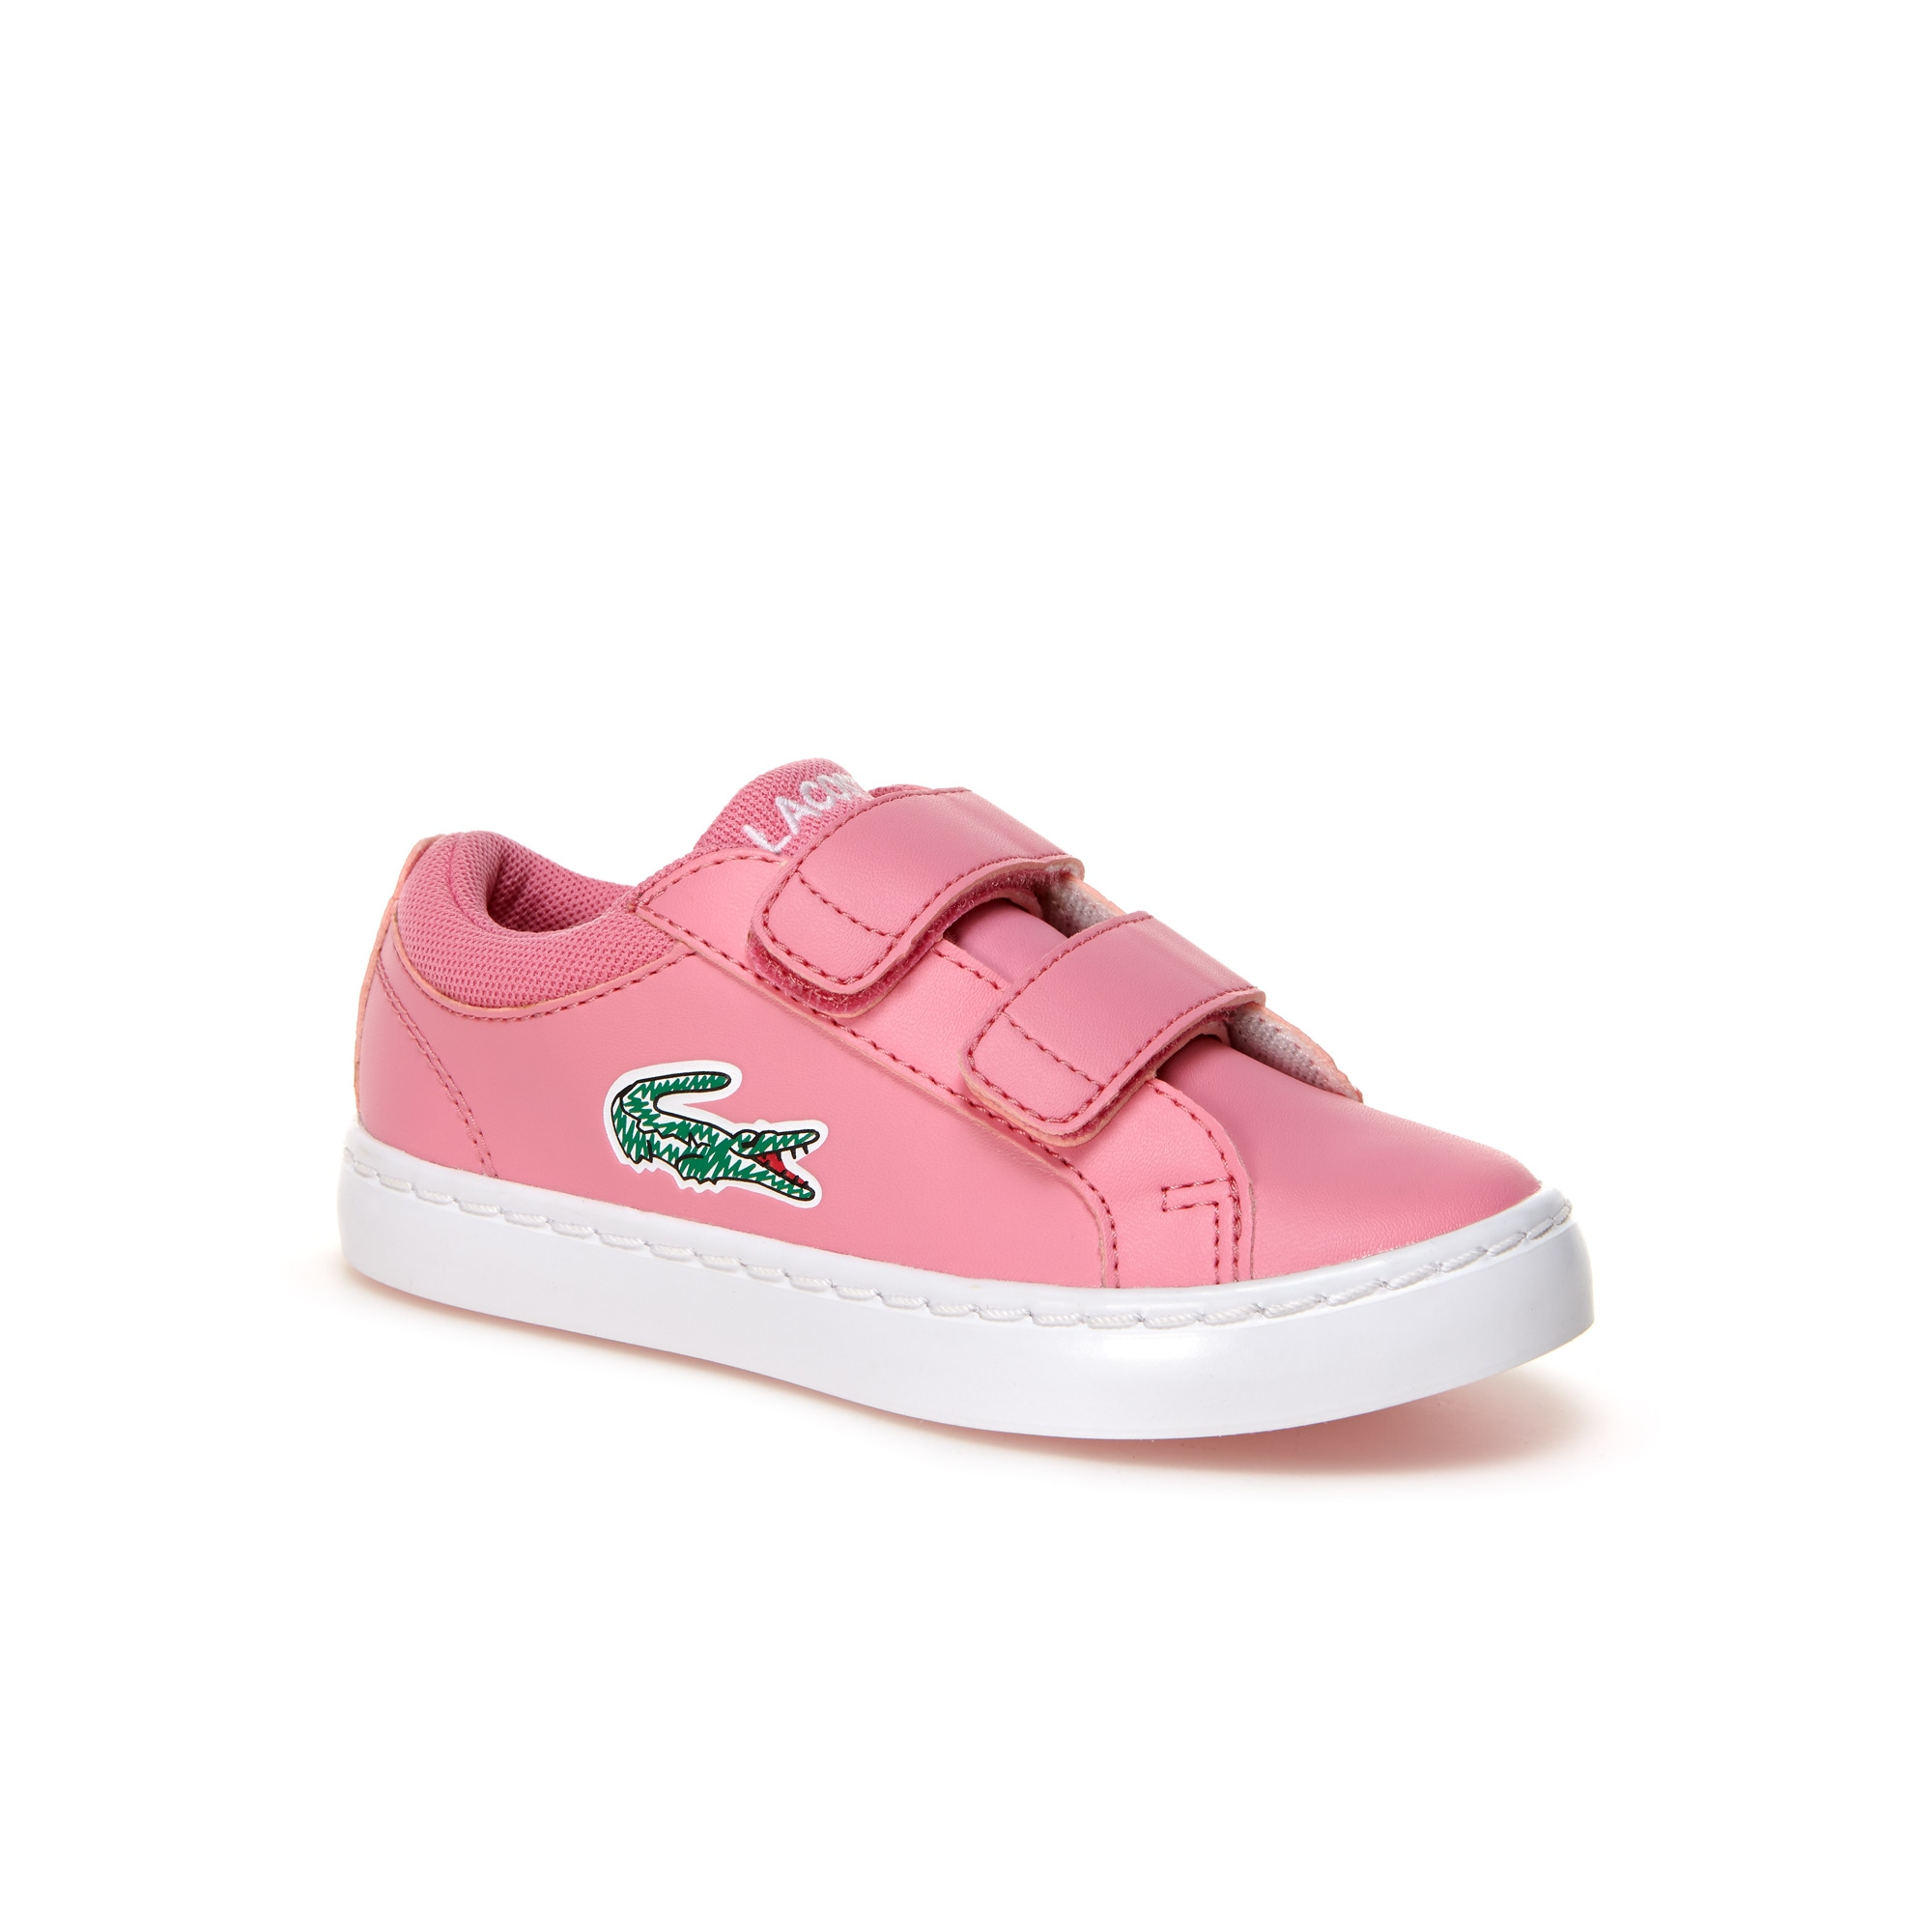 Infants' Straightset Lace Leather-look Trainers